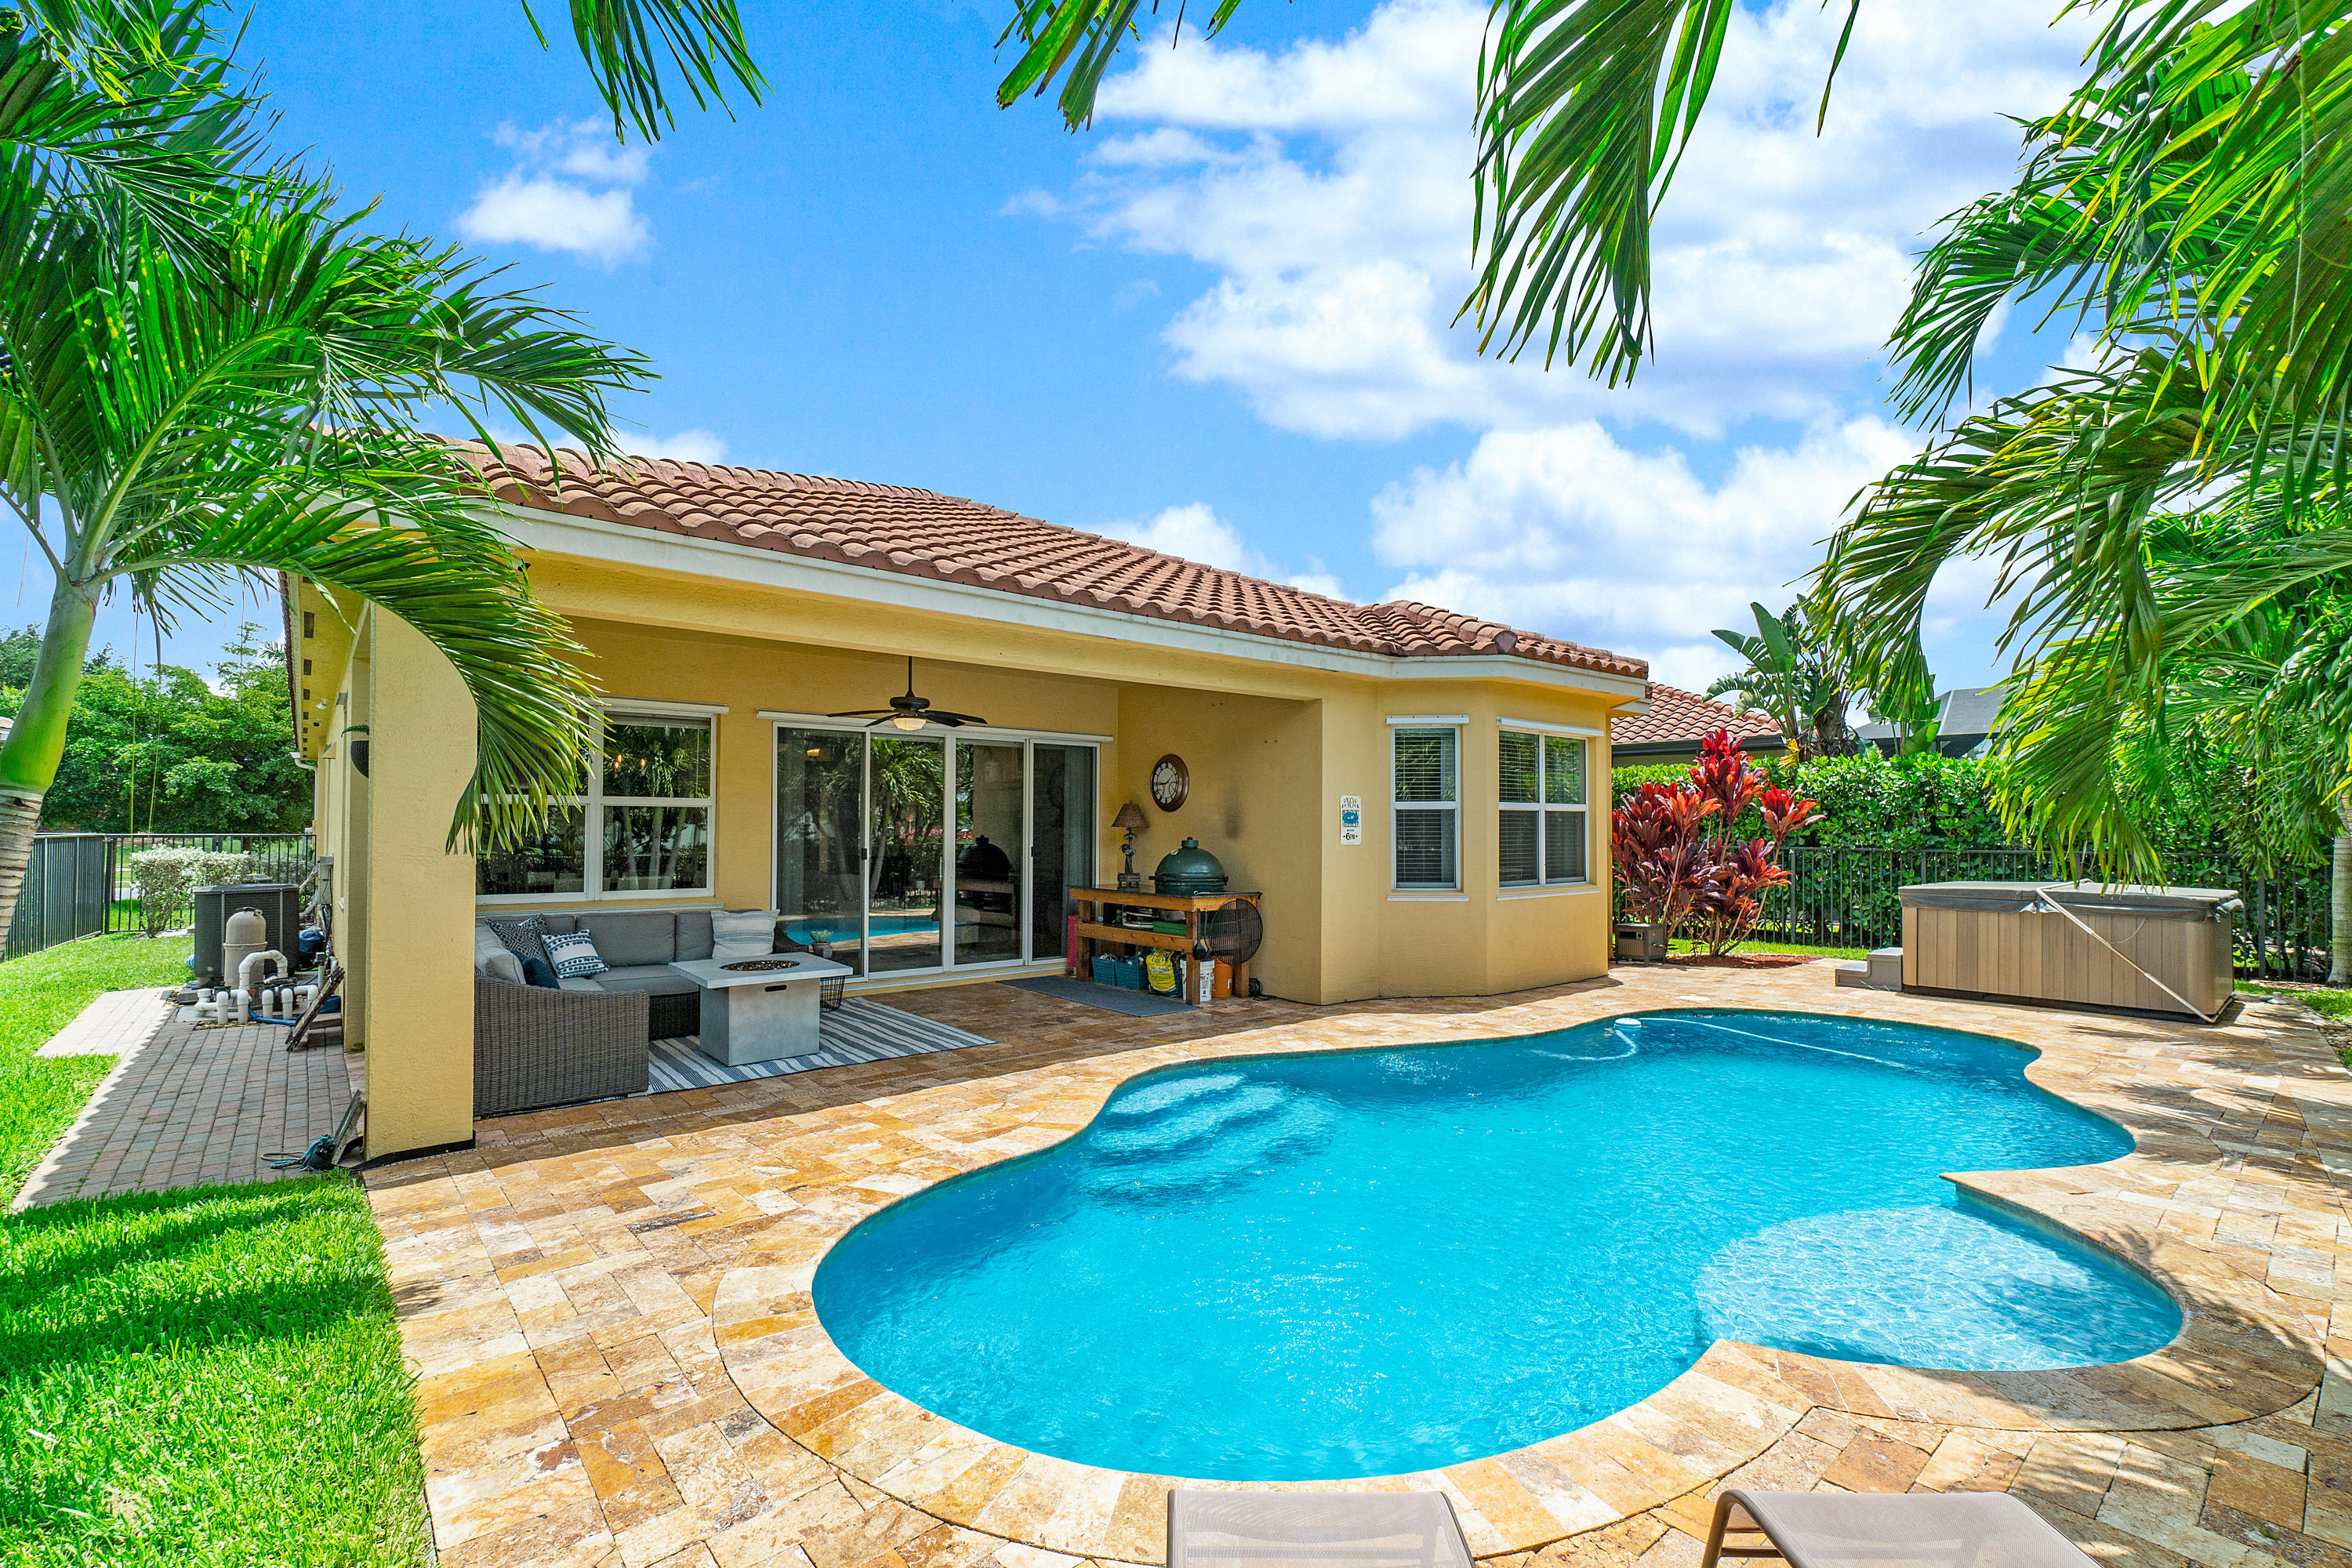 One of Royal Palm Beach 3 Bedroom Homes for Sale at 2841 Bellarosa Circle